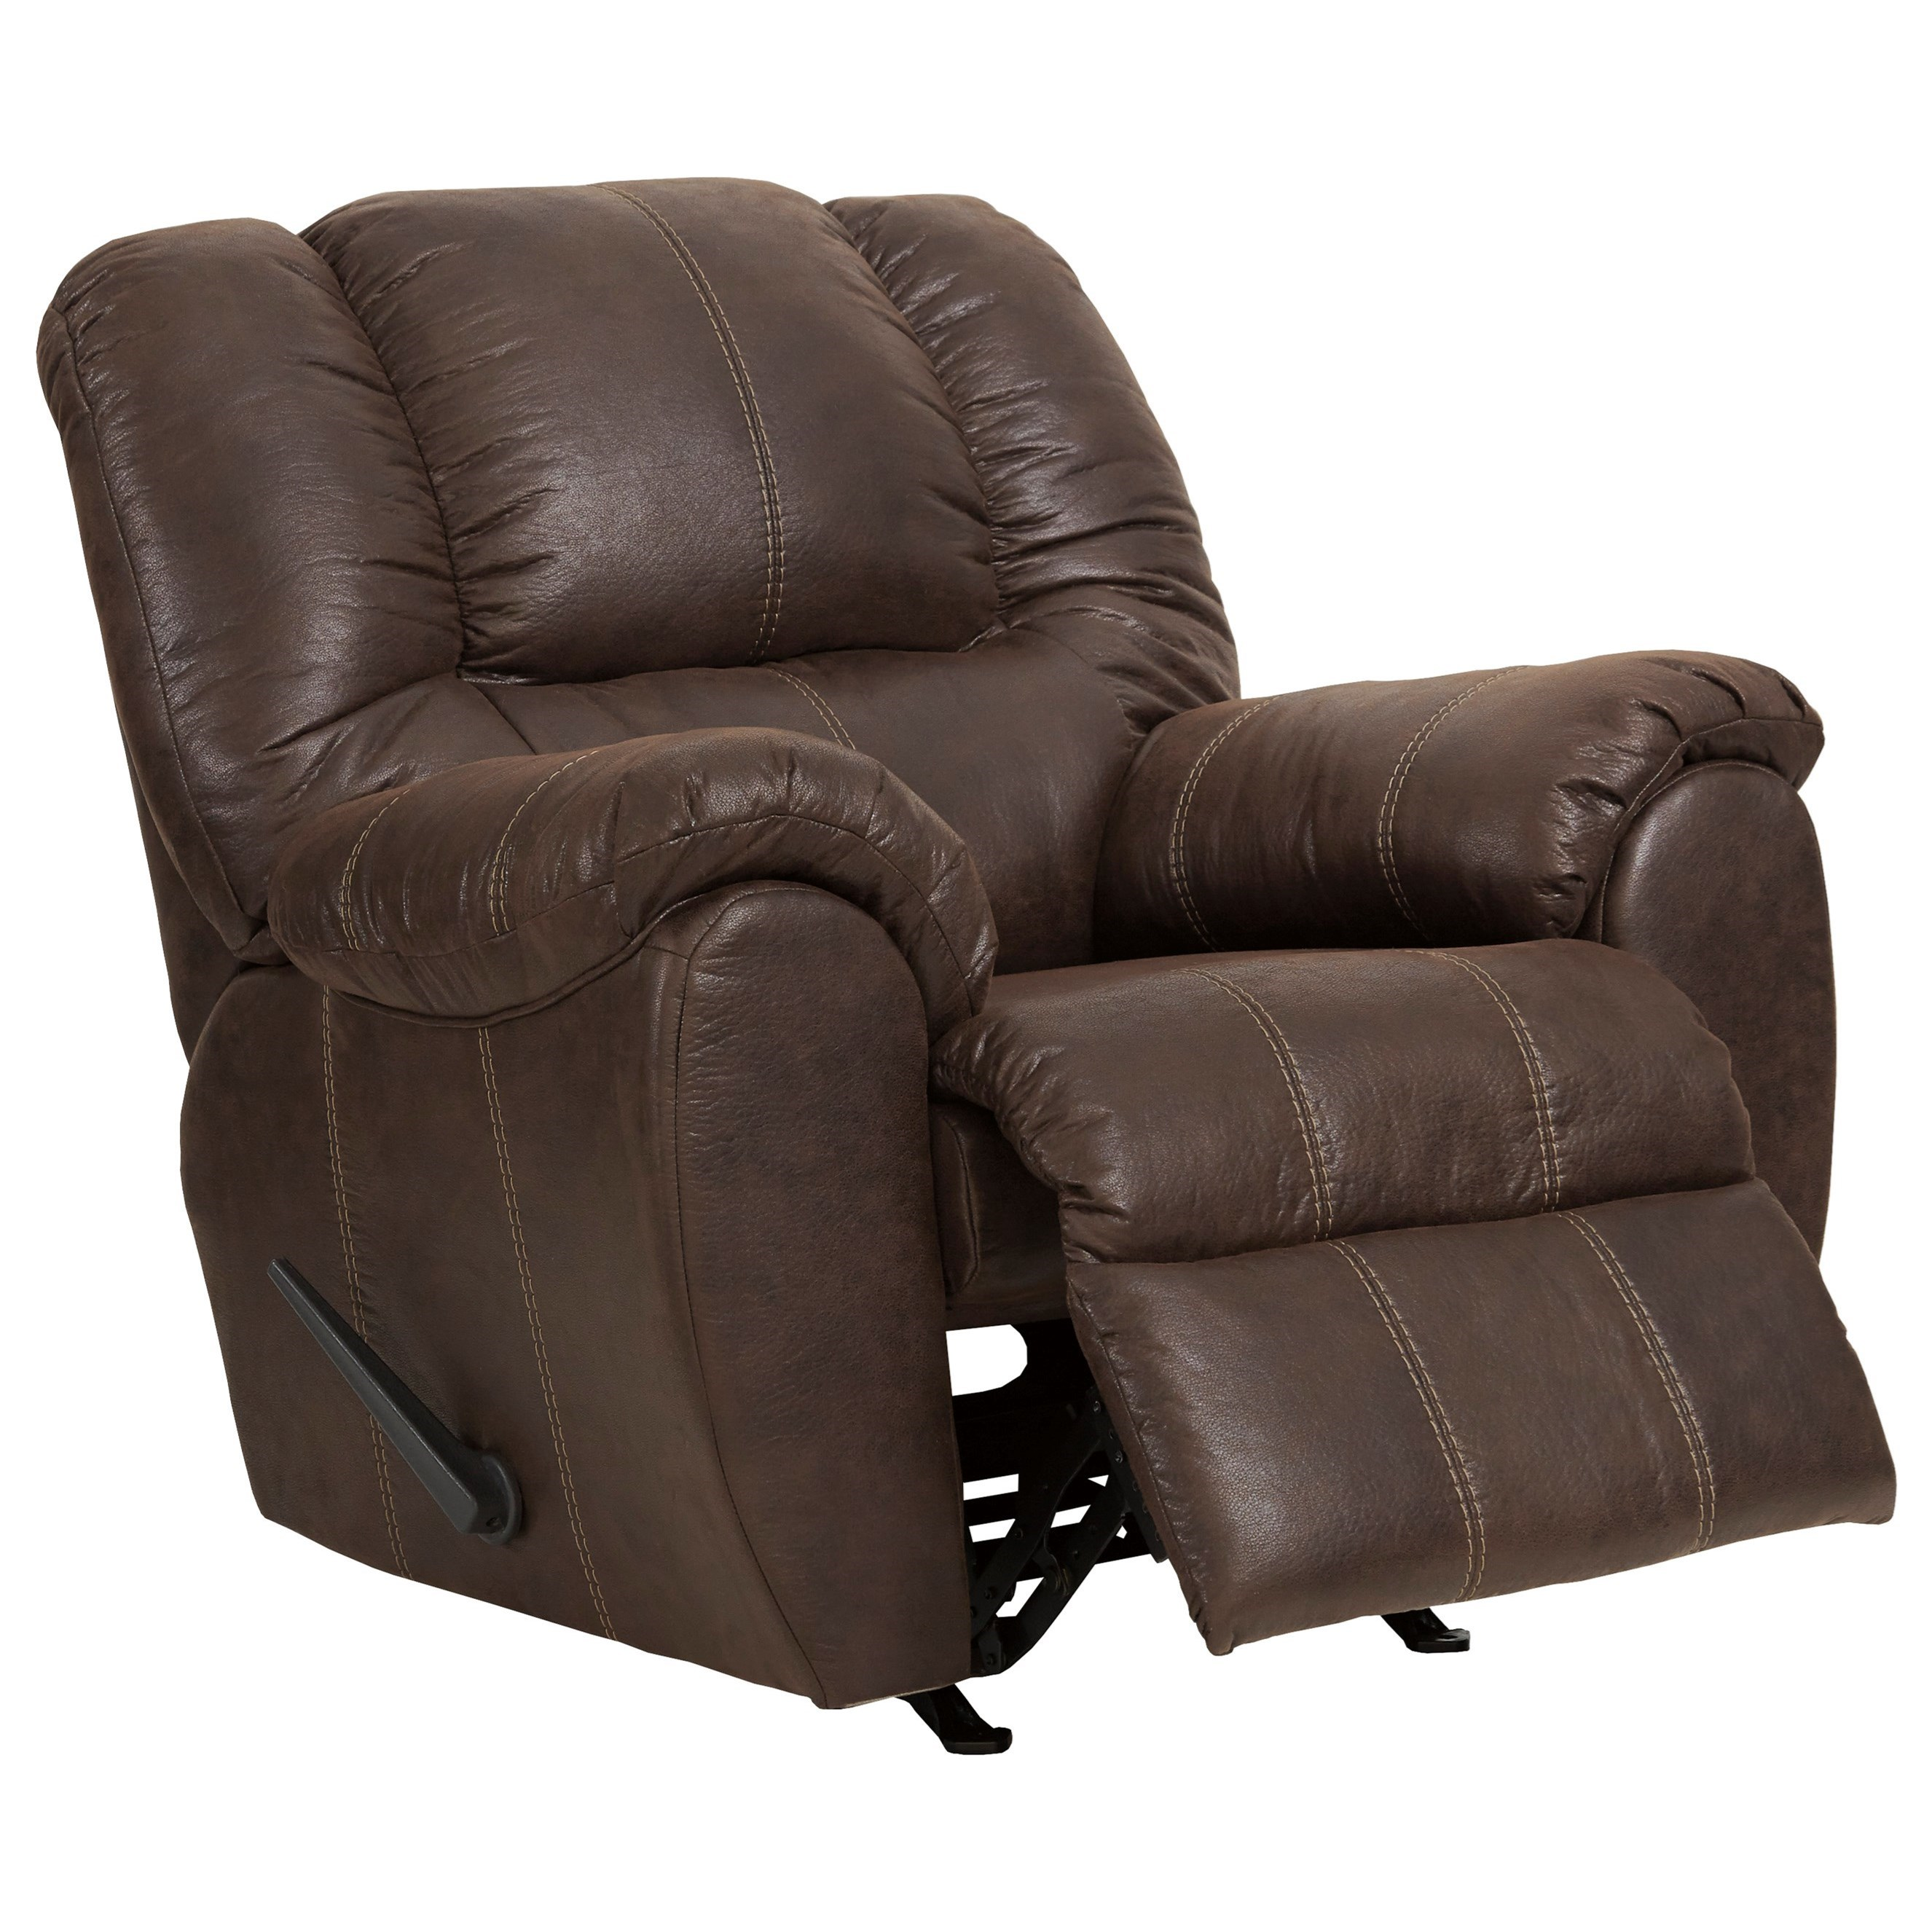 McGann Rocker Recliner by Signature Design by Ashley at Coconis Furniture & Mattress 1st